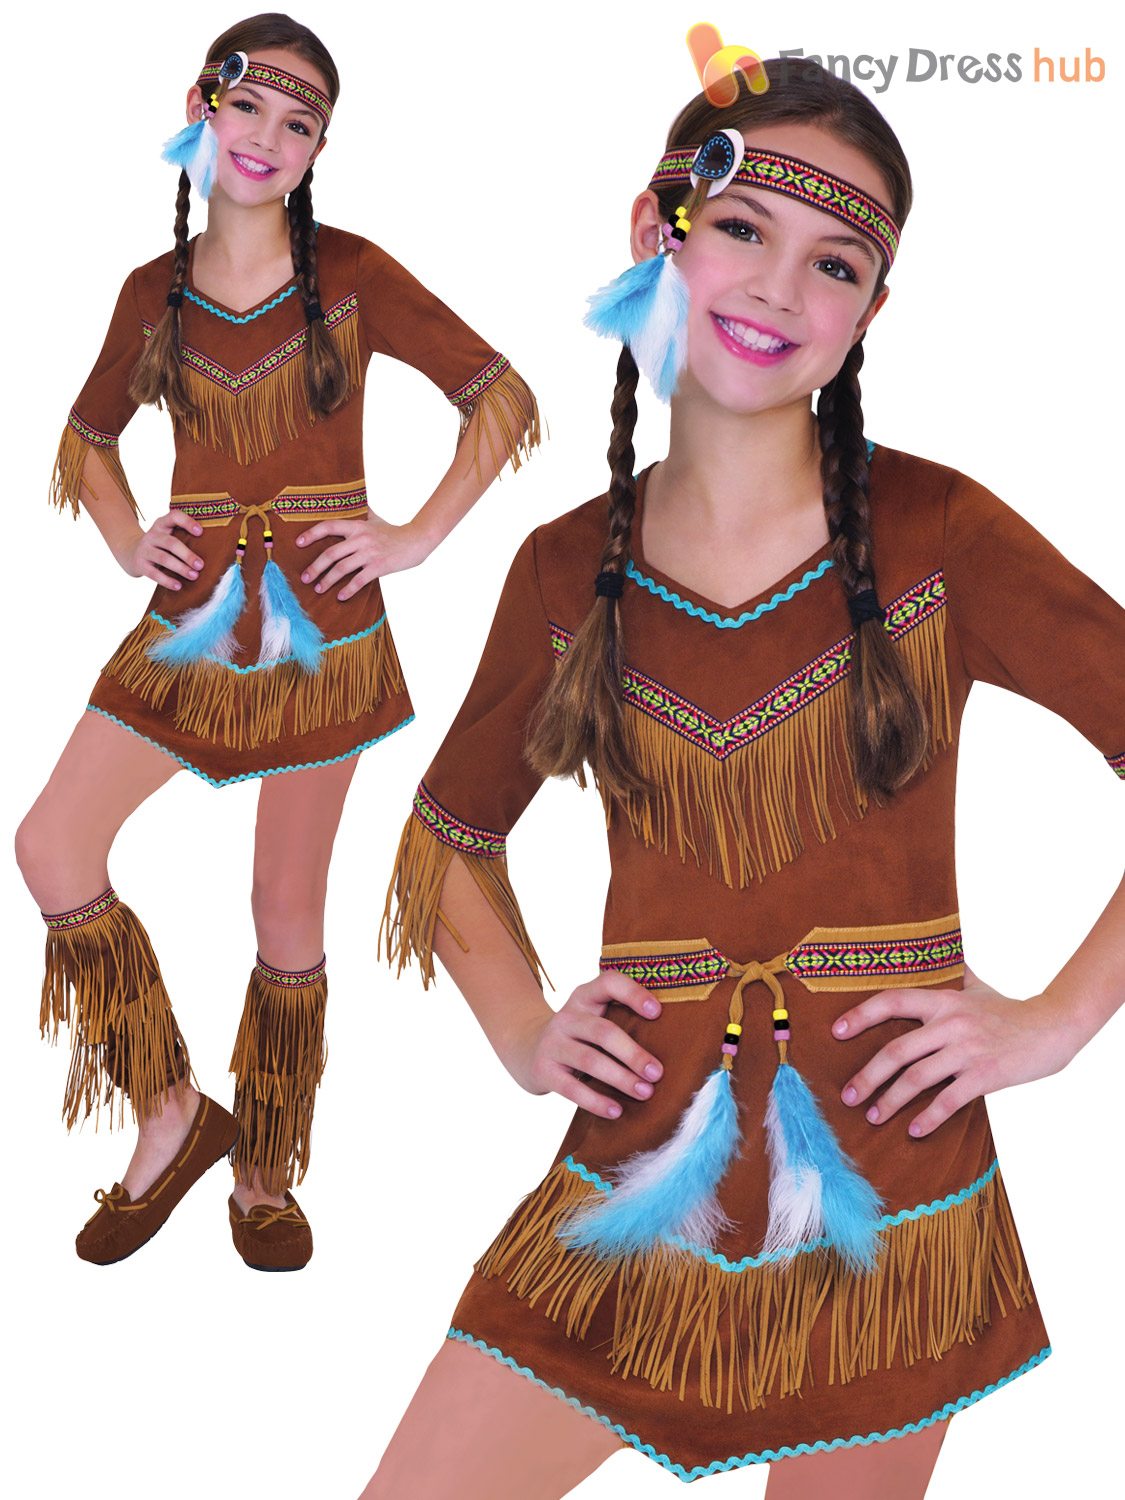 pocahontas costume for kids images galleries with a bite. Black Bedroom Furniture Sets. Home Design Ideas